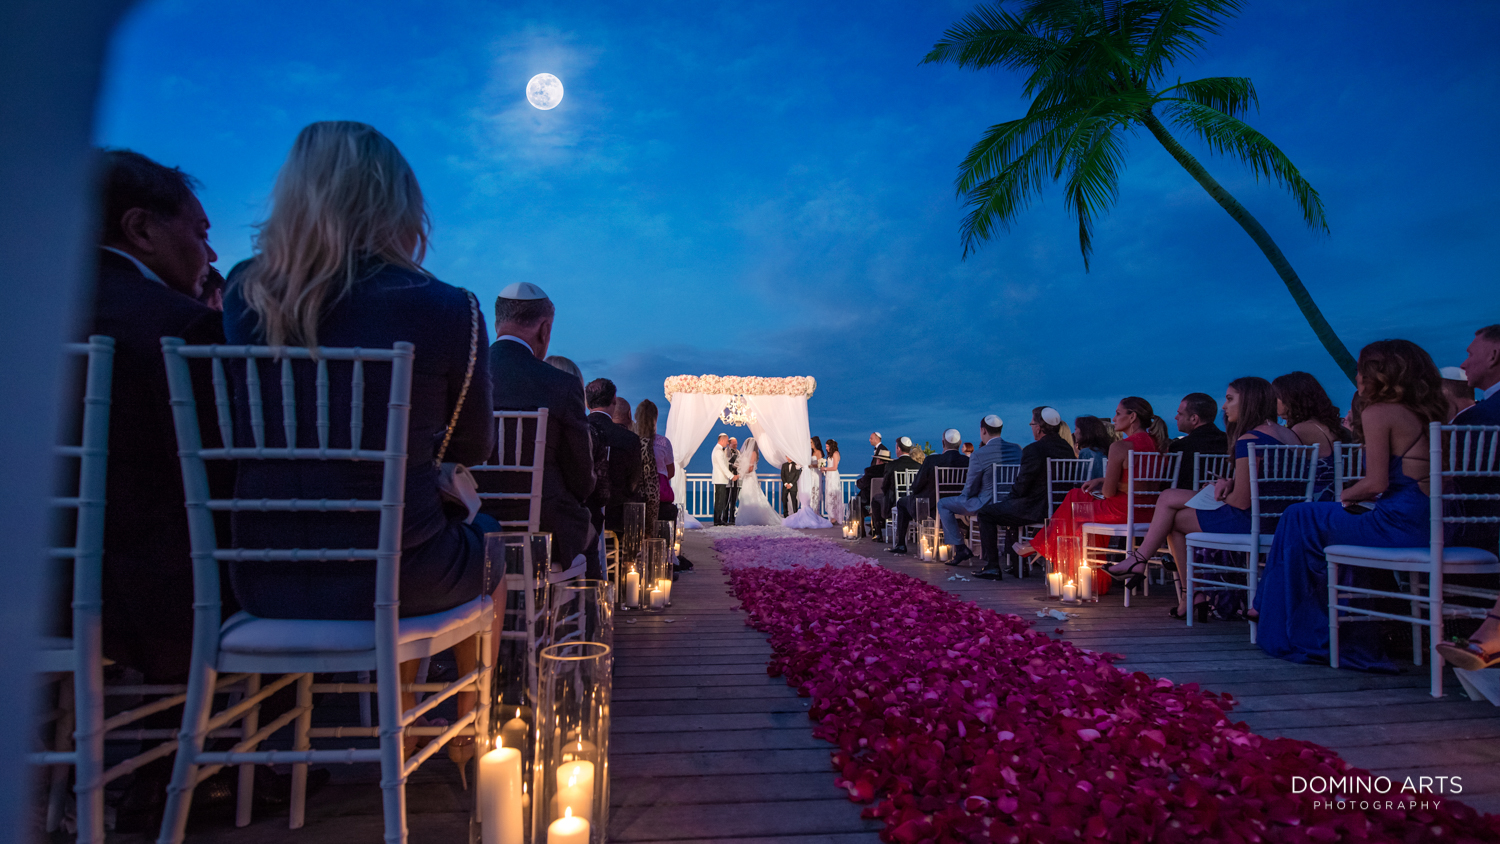 Wedding ceremony décor pictures at One&Only Ocean Club Bahamas